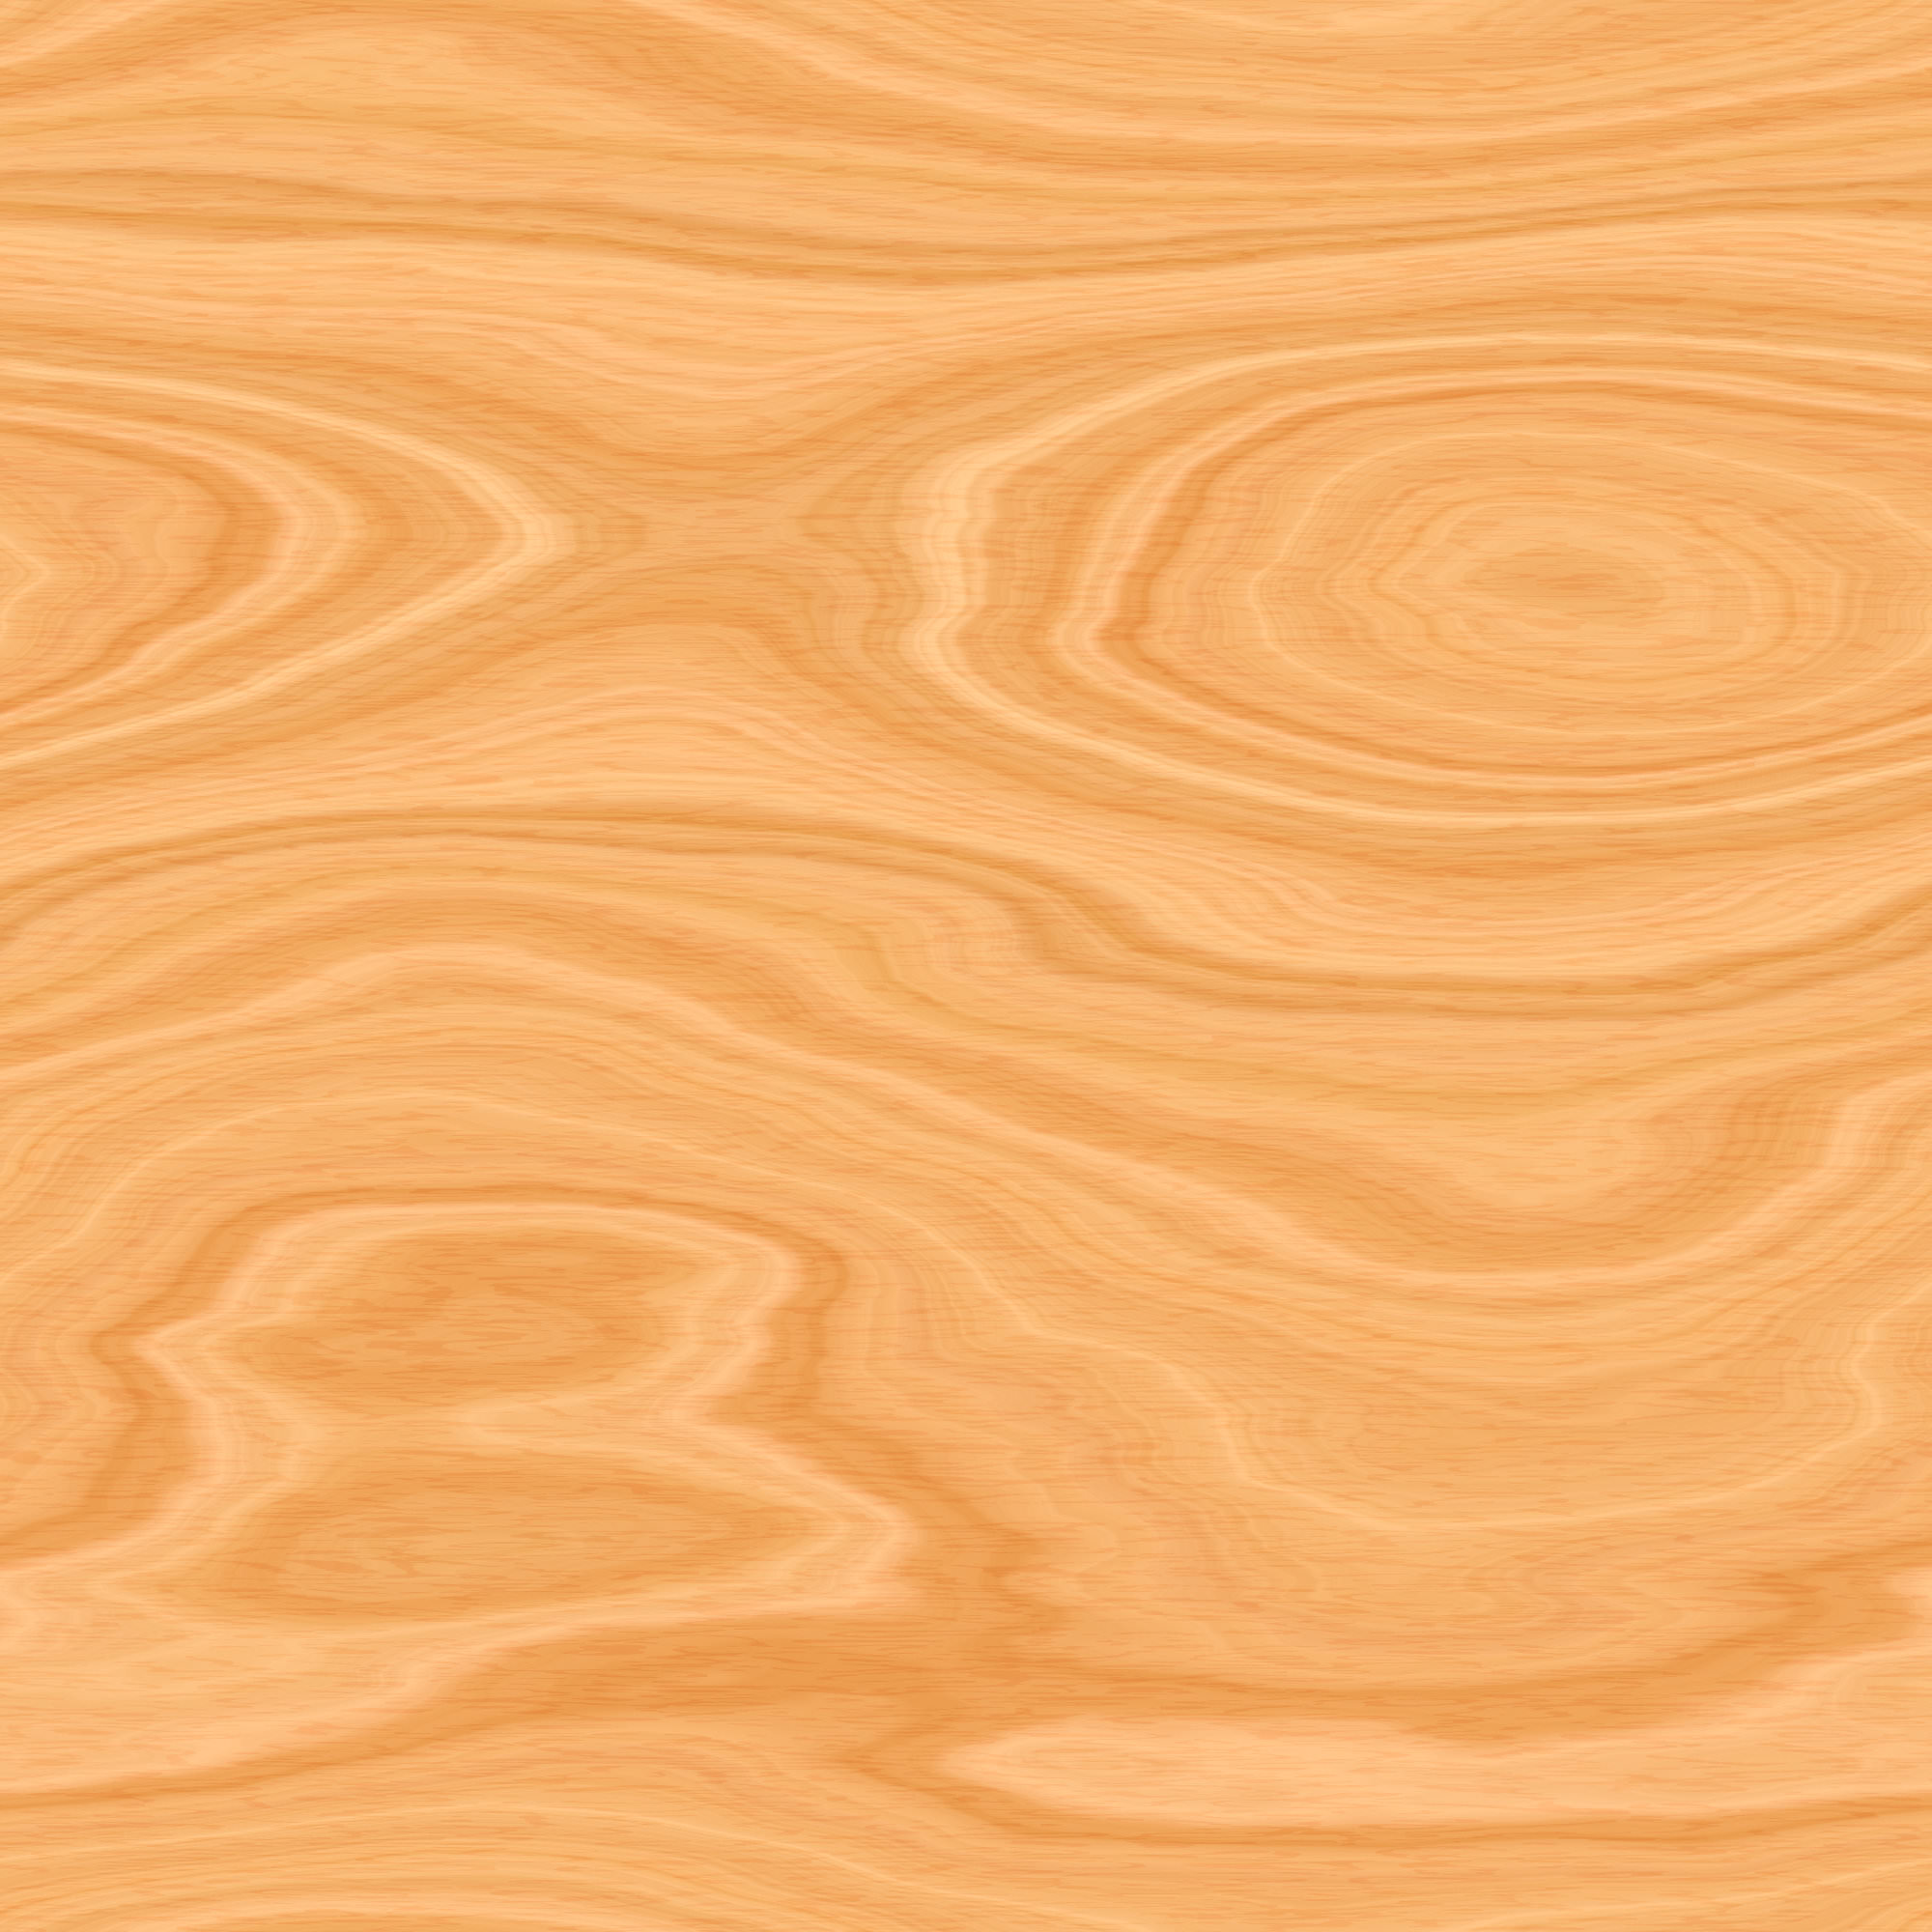 Seamless Pine Wood Texture